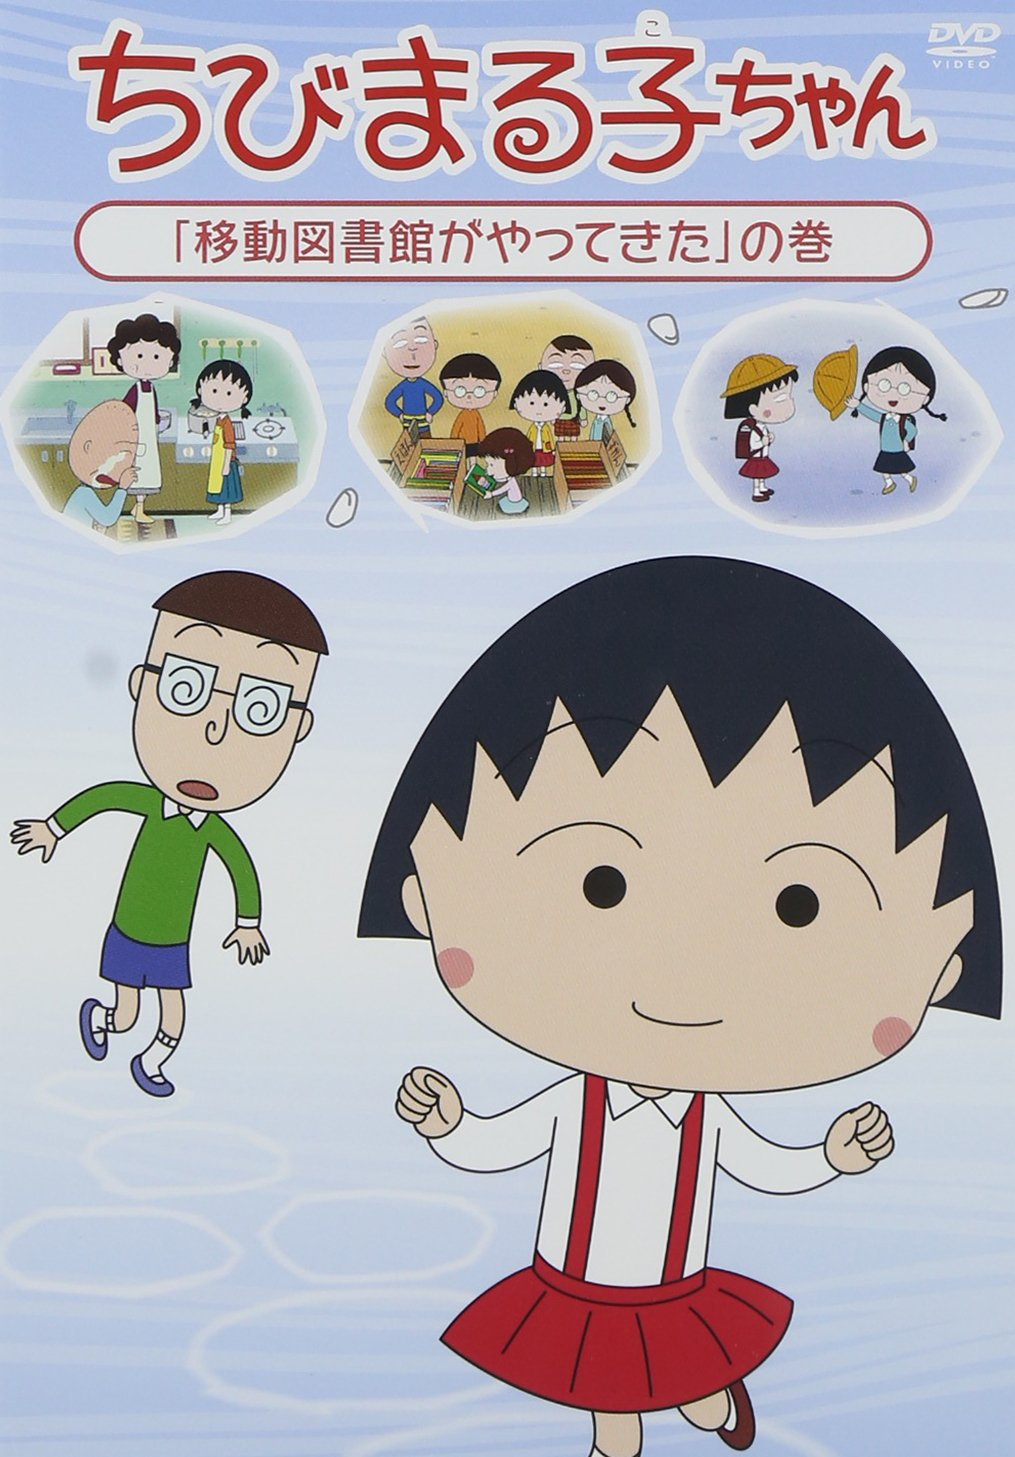 Animation Chibi Maruko Chan Ido Toshokan Ga Yatte Kita No Maki Japan Dvd Pcbp 12228 Movies Tv